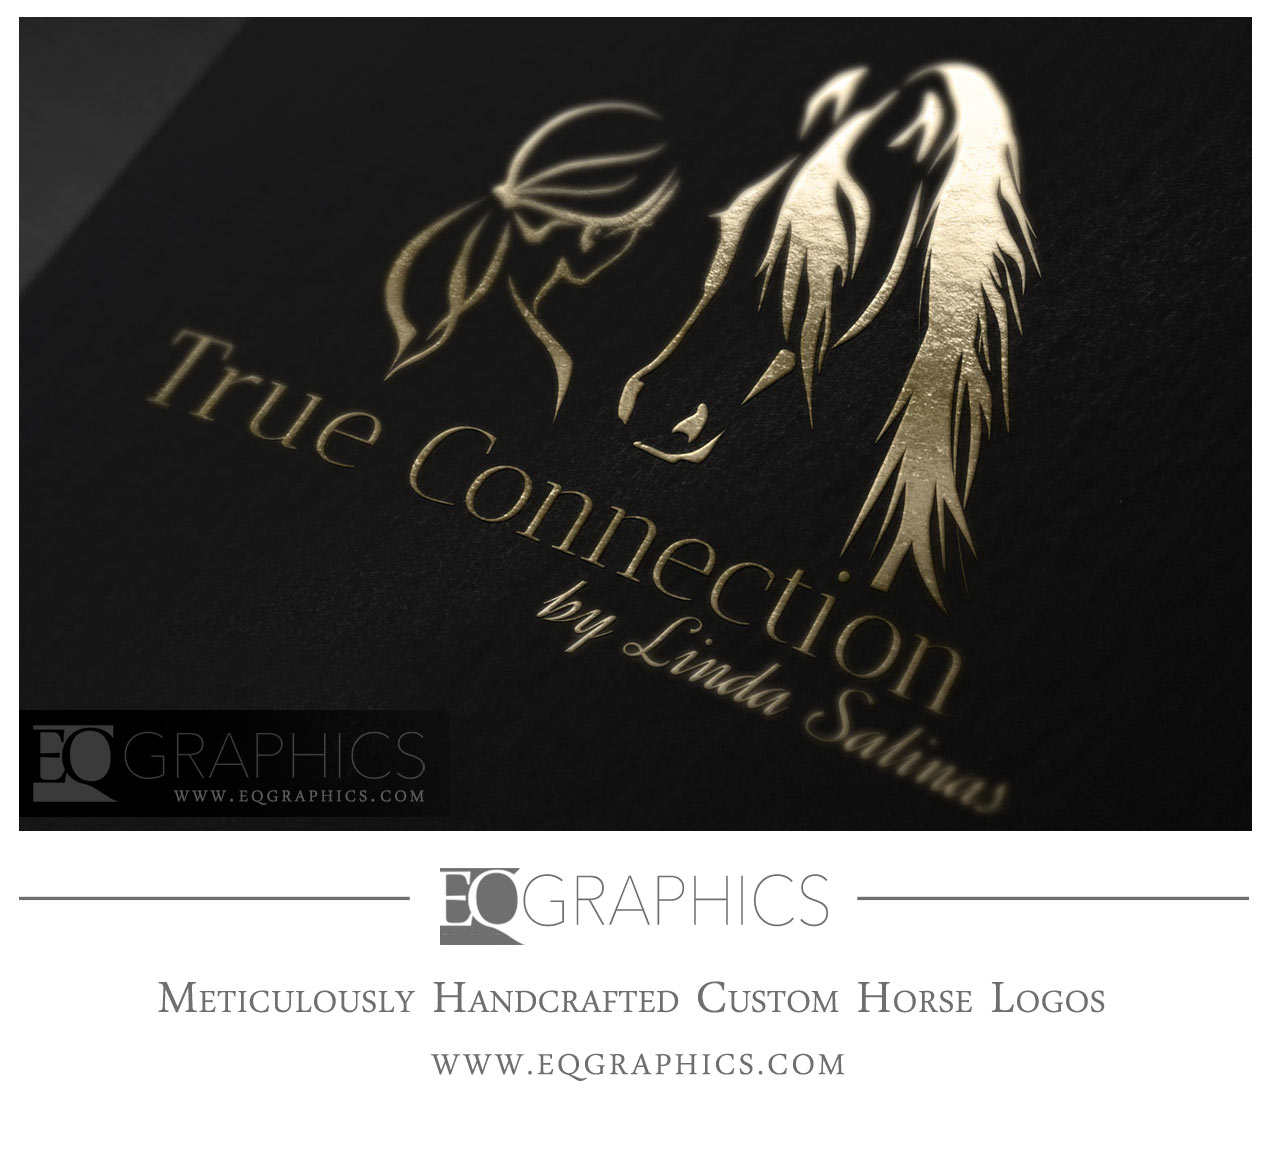 True Connection Horse Person Logo Design by EQ Graphics Designer Horsemanship Logos